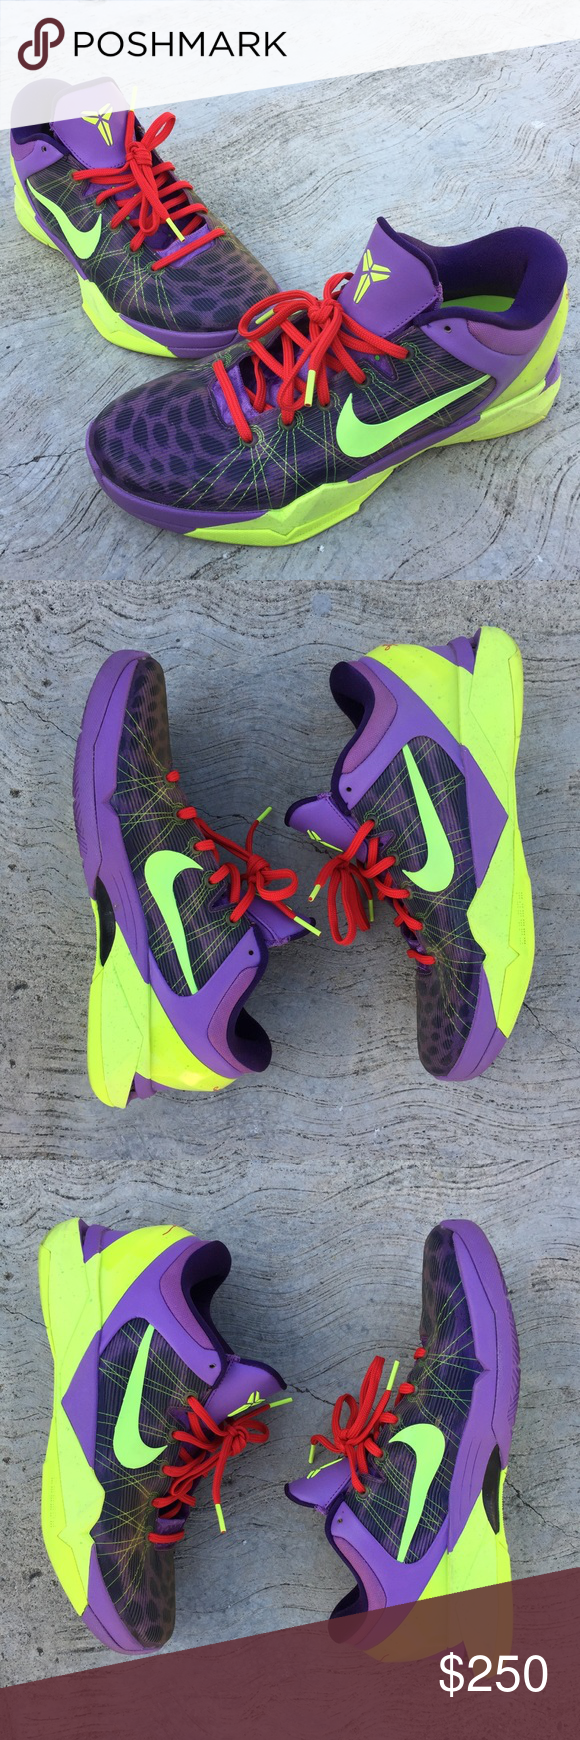 finest selection 749eb 79f51 Nike Zoom Kobe 7 VII Christmas Purple Cheetahs Nike Kobe 7 Christmas  edition in excellent condition. Original box, laces, and insole swaps for  extra ankle ...